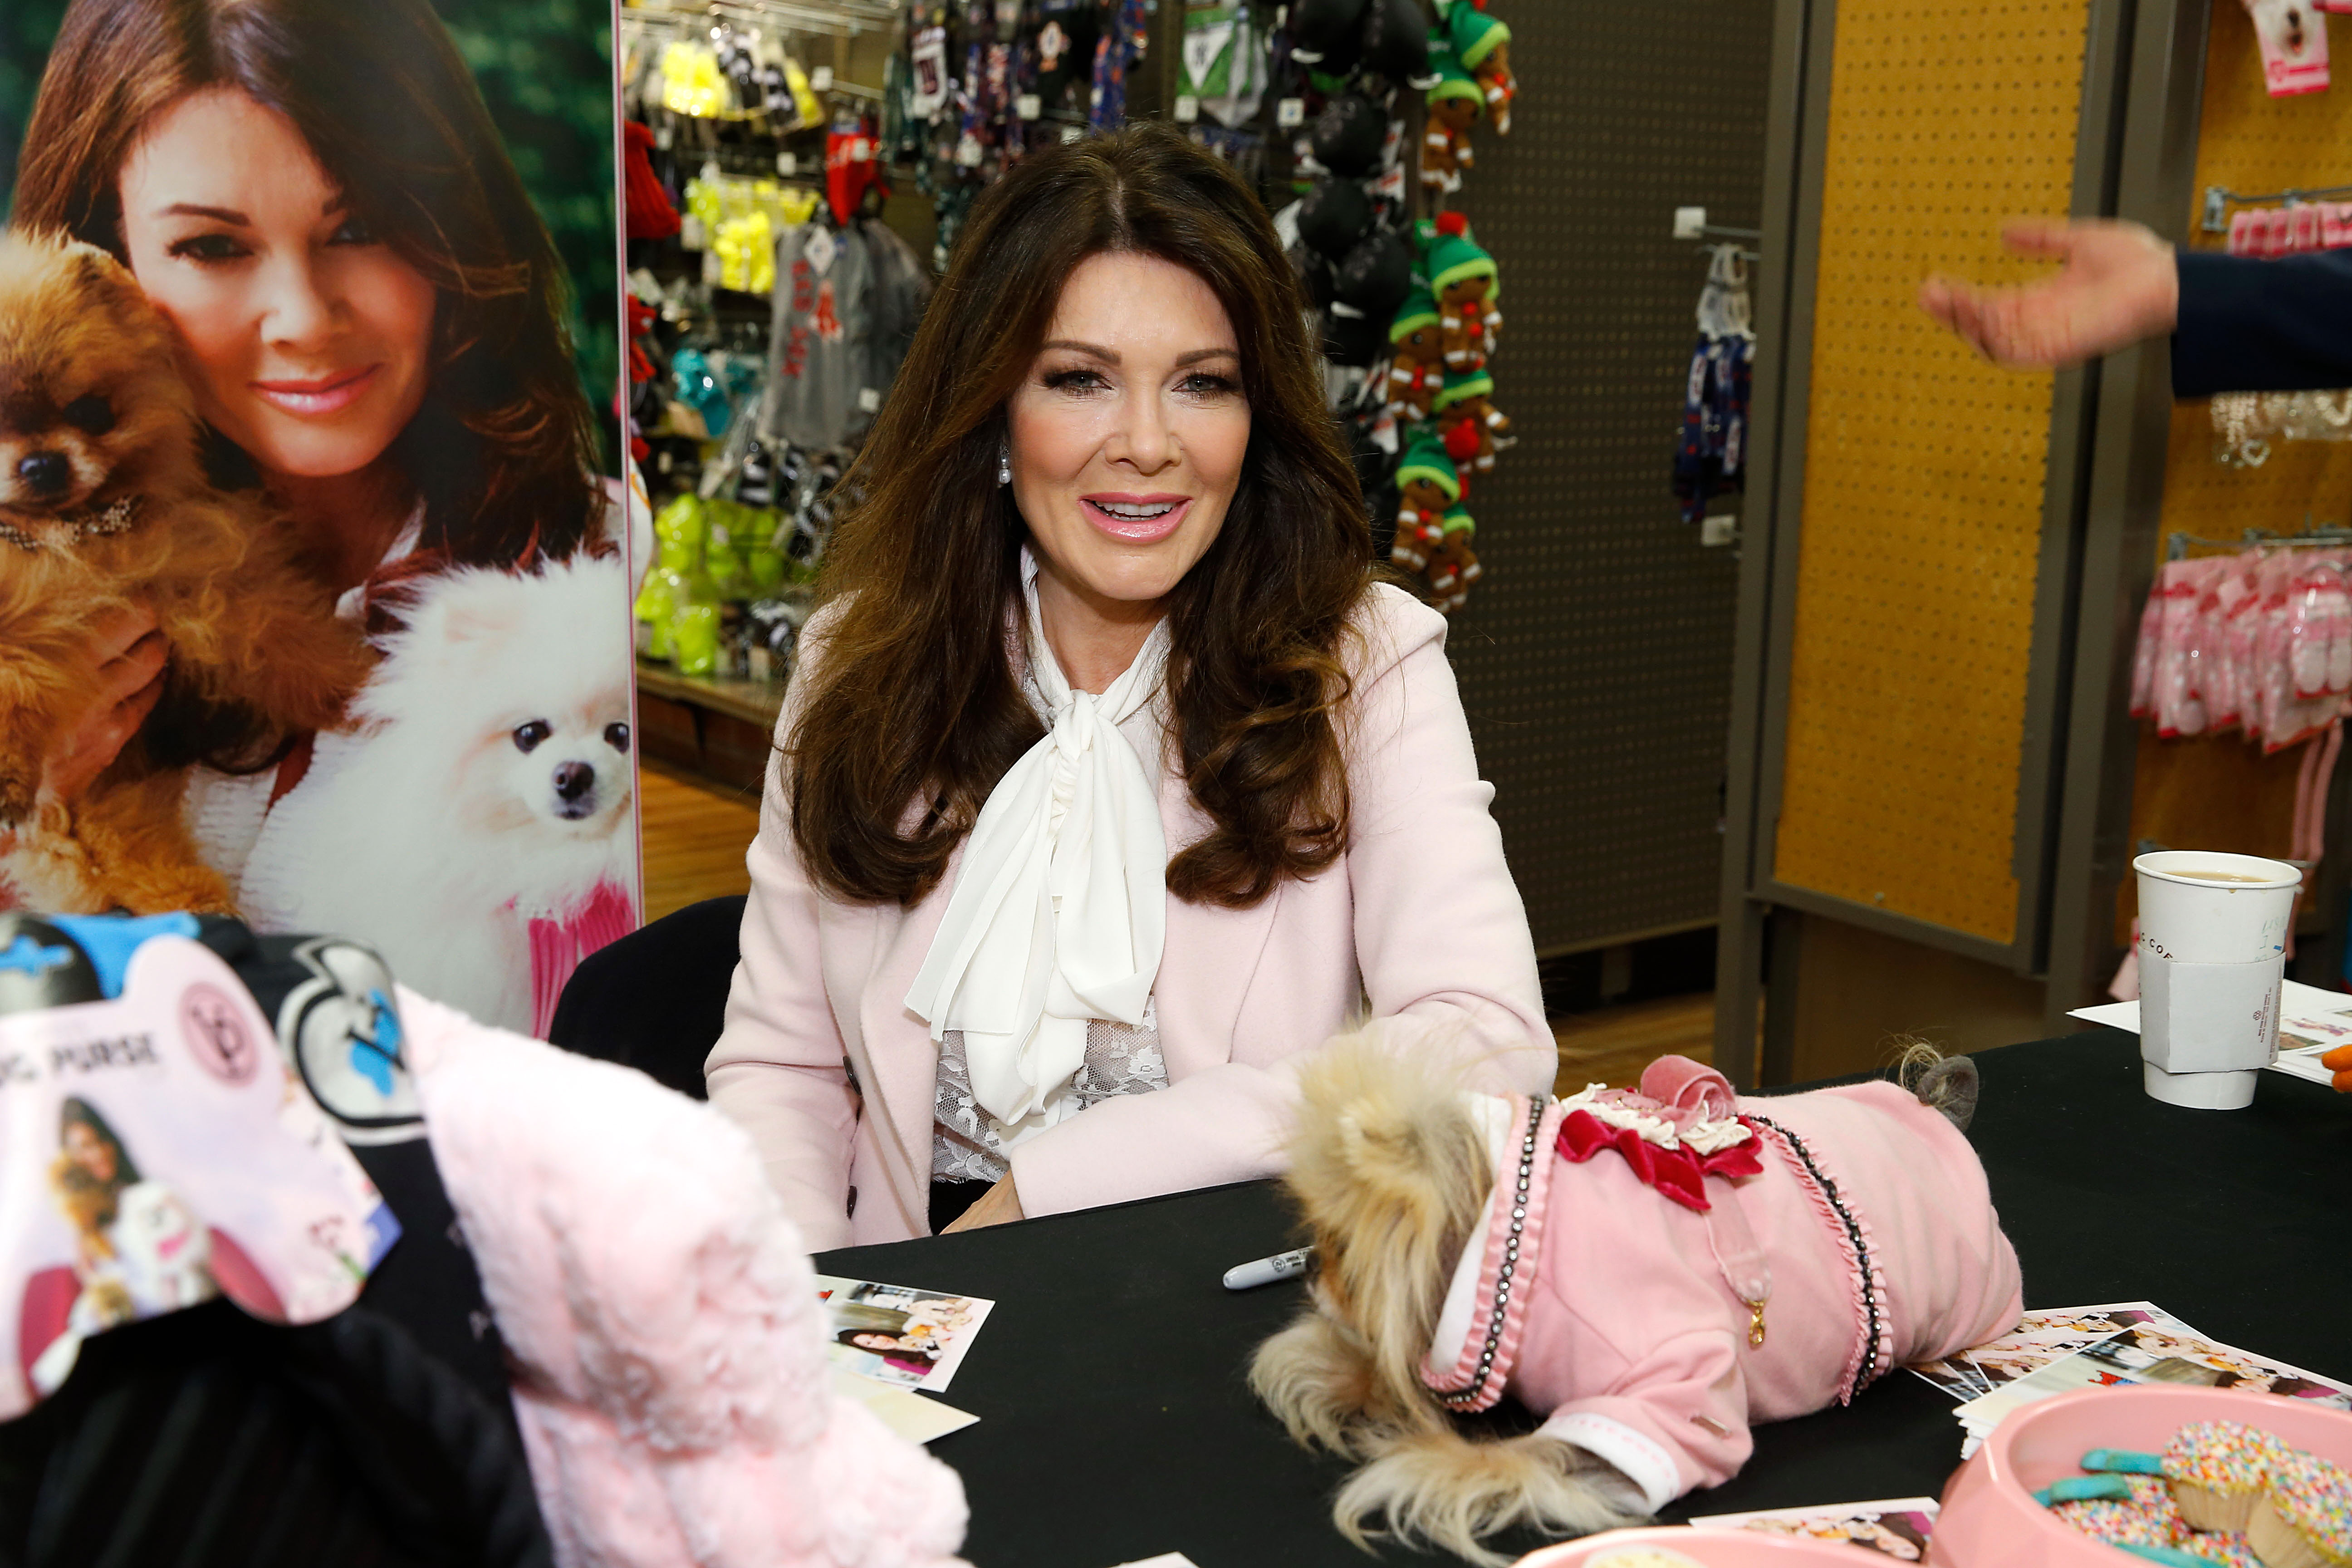 Lisa Vanderpump  and her dog Giggy attend Vanderpump Pets Launch at Petco Union Square on December 8, 2016 in New York City.